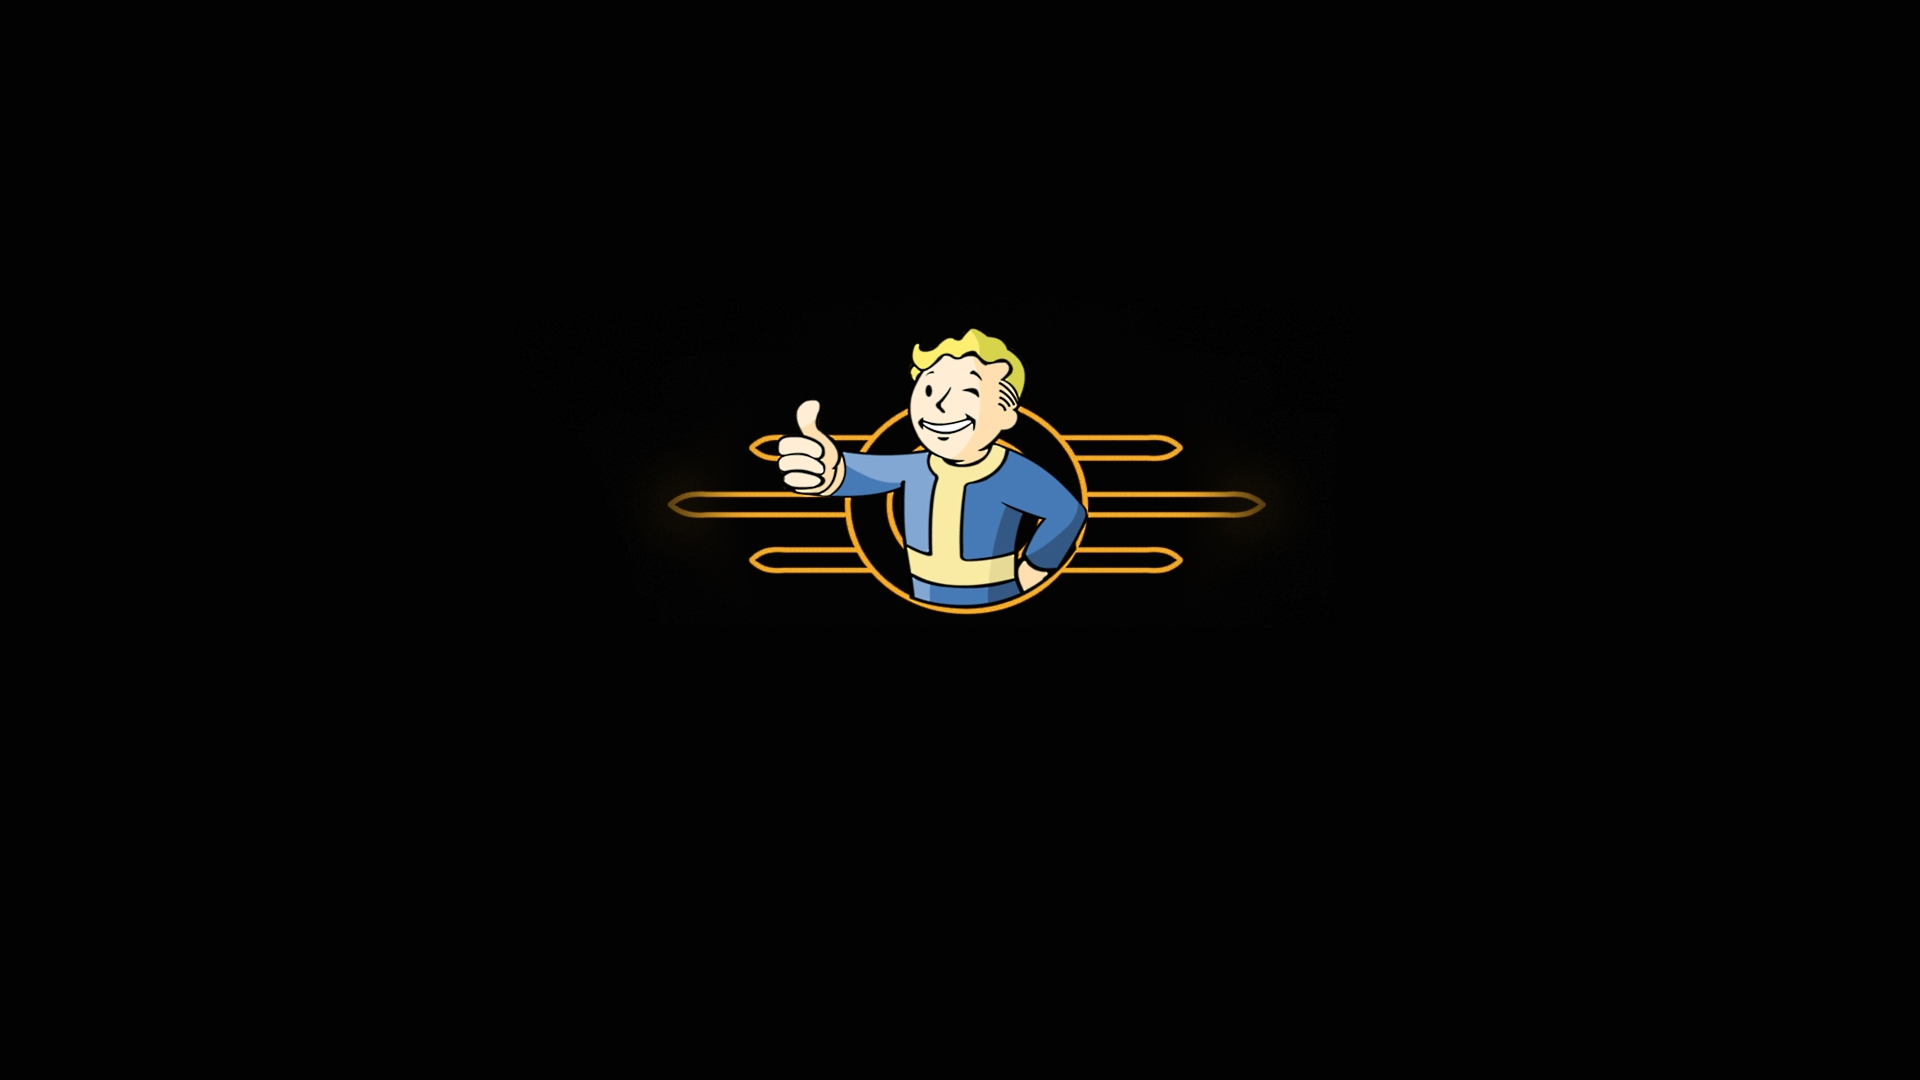 800x480 wallpaper fallout